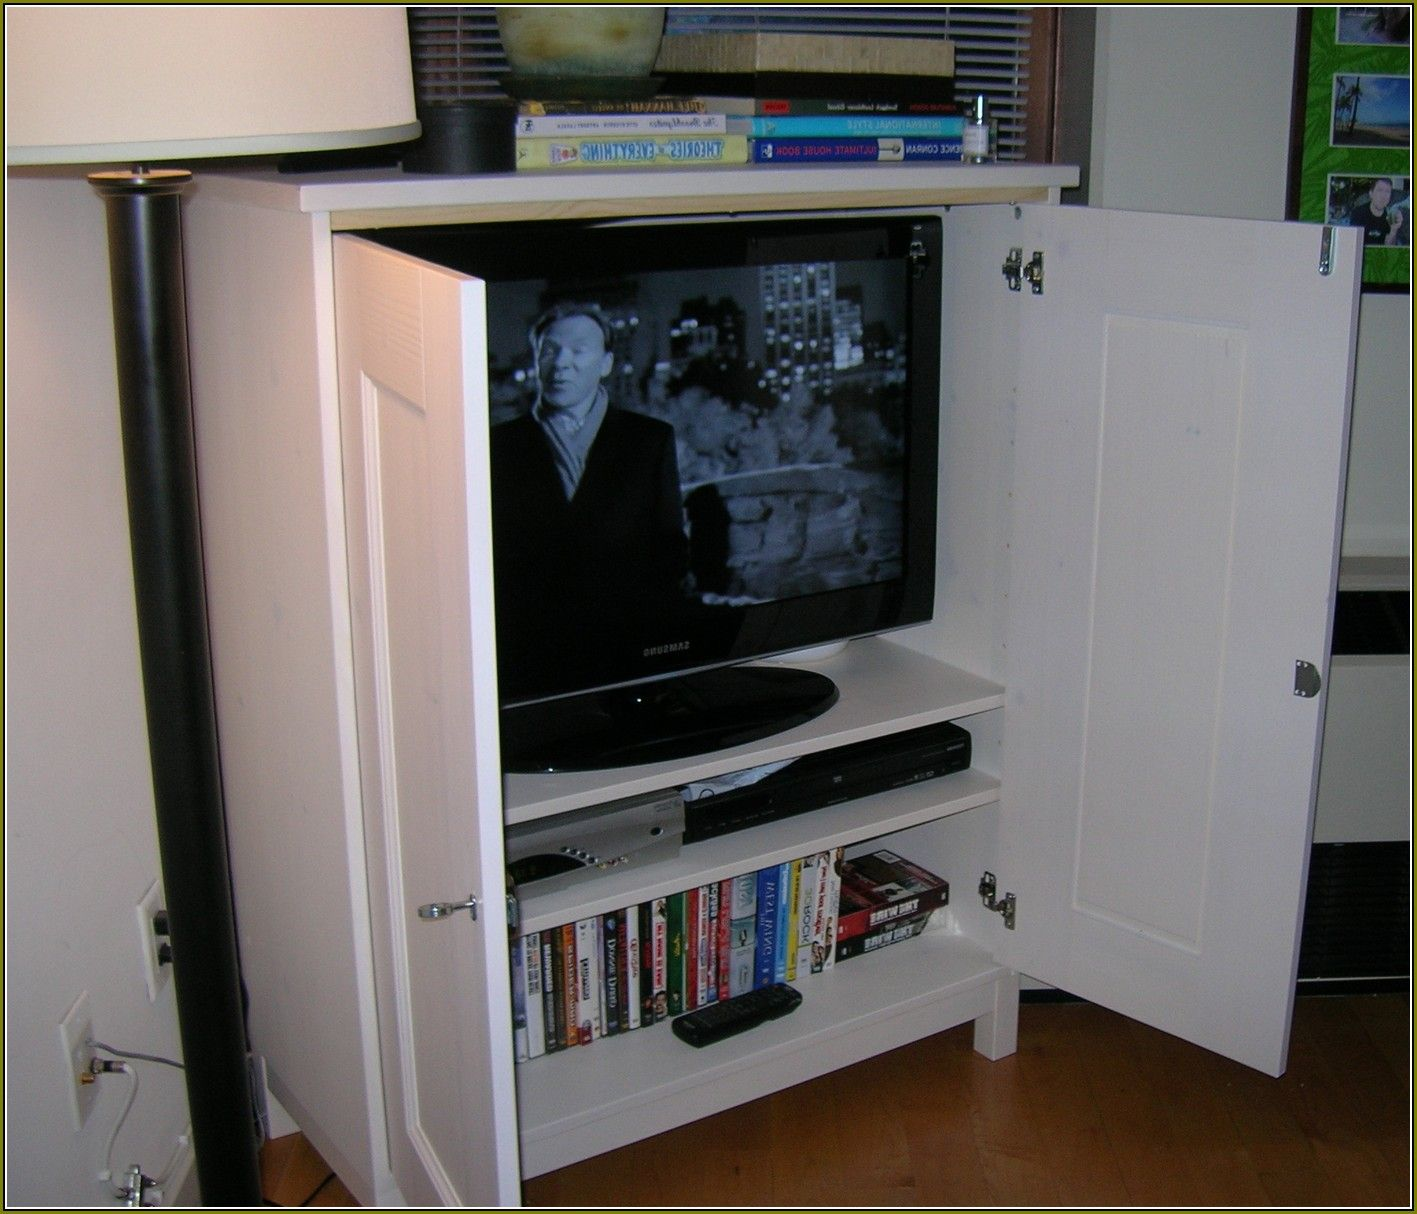 images of tv cabinets with doors | Flat Screen Tv Cabinet With ... on search screen, tv home table, tv color screen, tv display screen, tv home design, dvr screen, tv blue screen, tv home speakers,